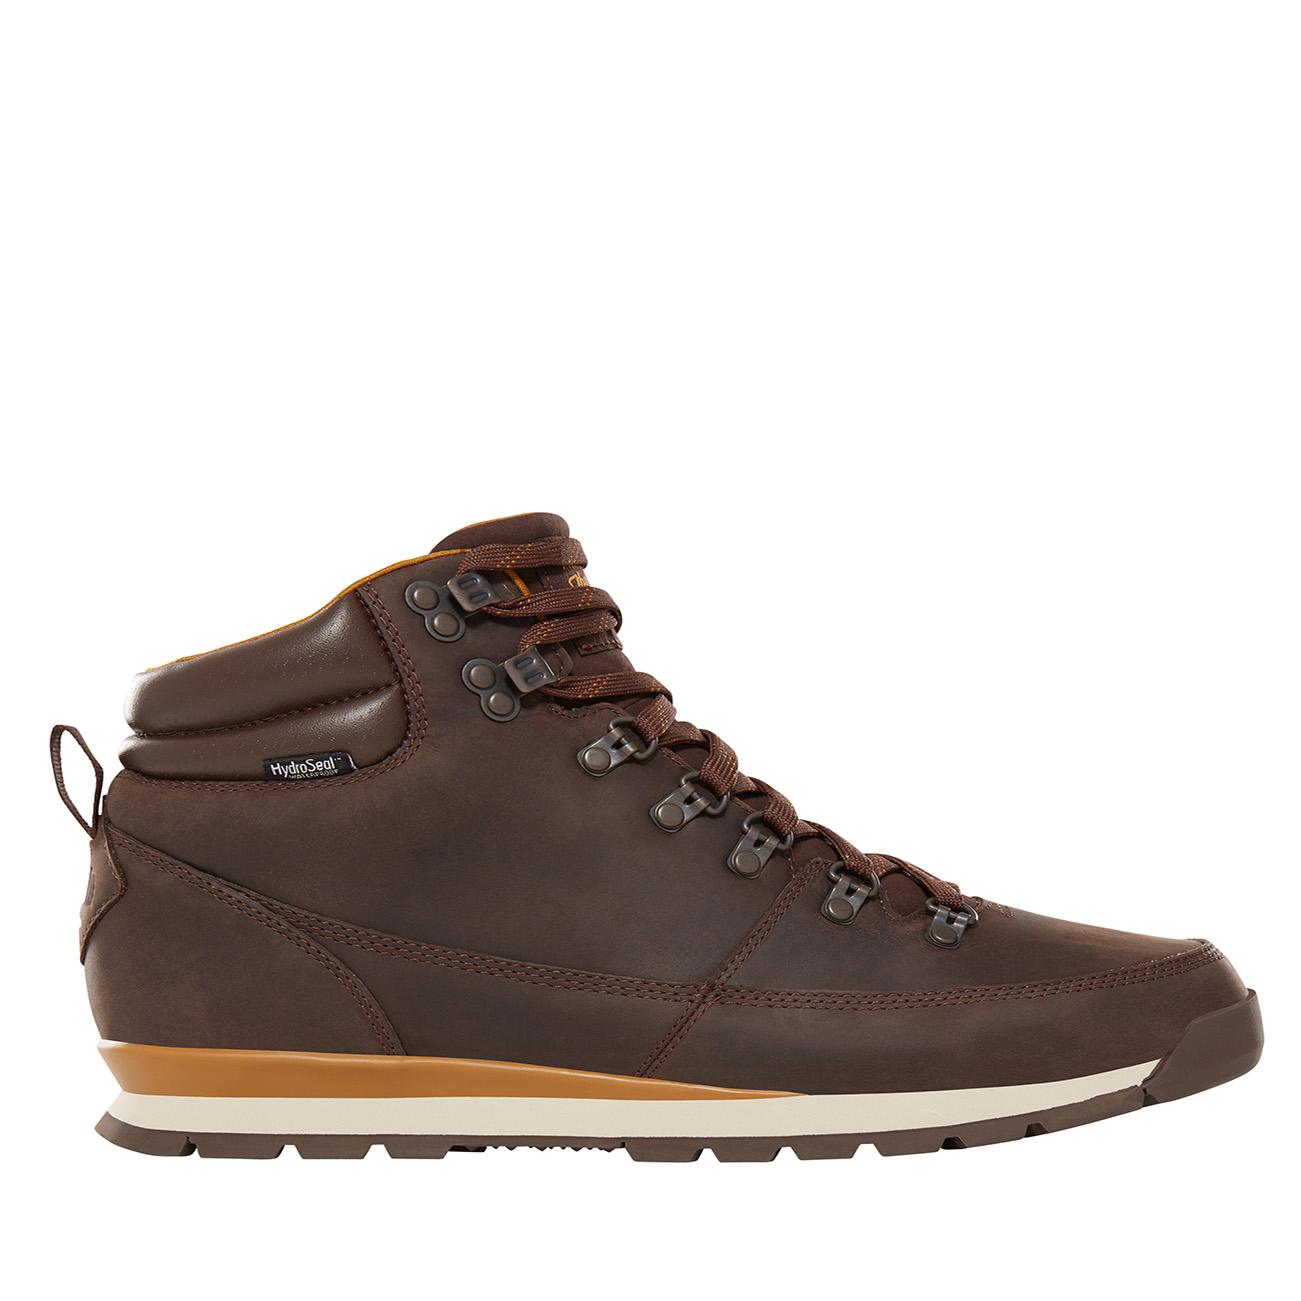 08cb2a865 Details about Mens The North Face Back To Berkeley Redux Leather Waterproof  Snow Boots UK 6-12